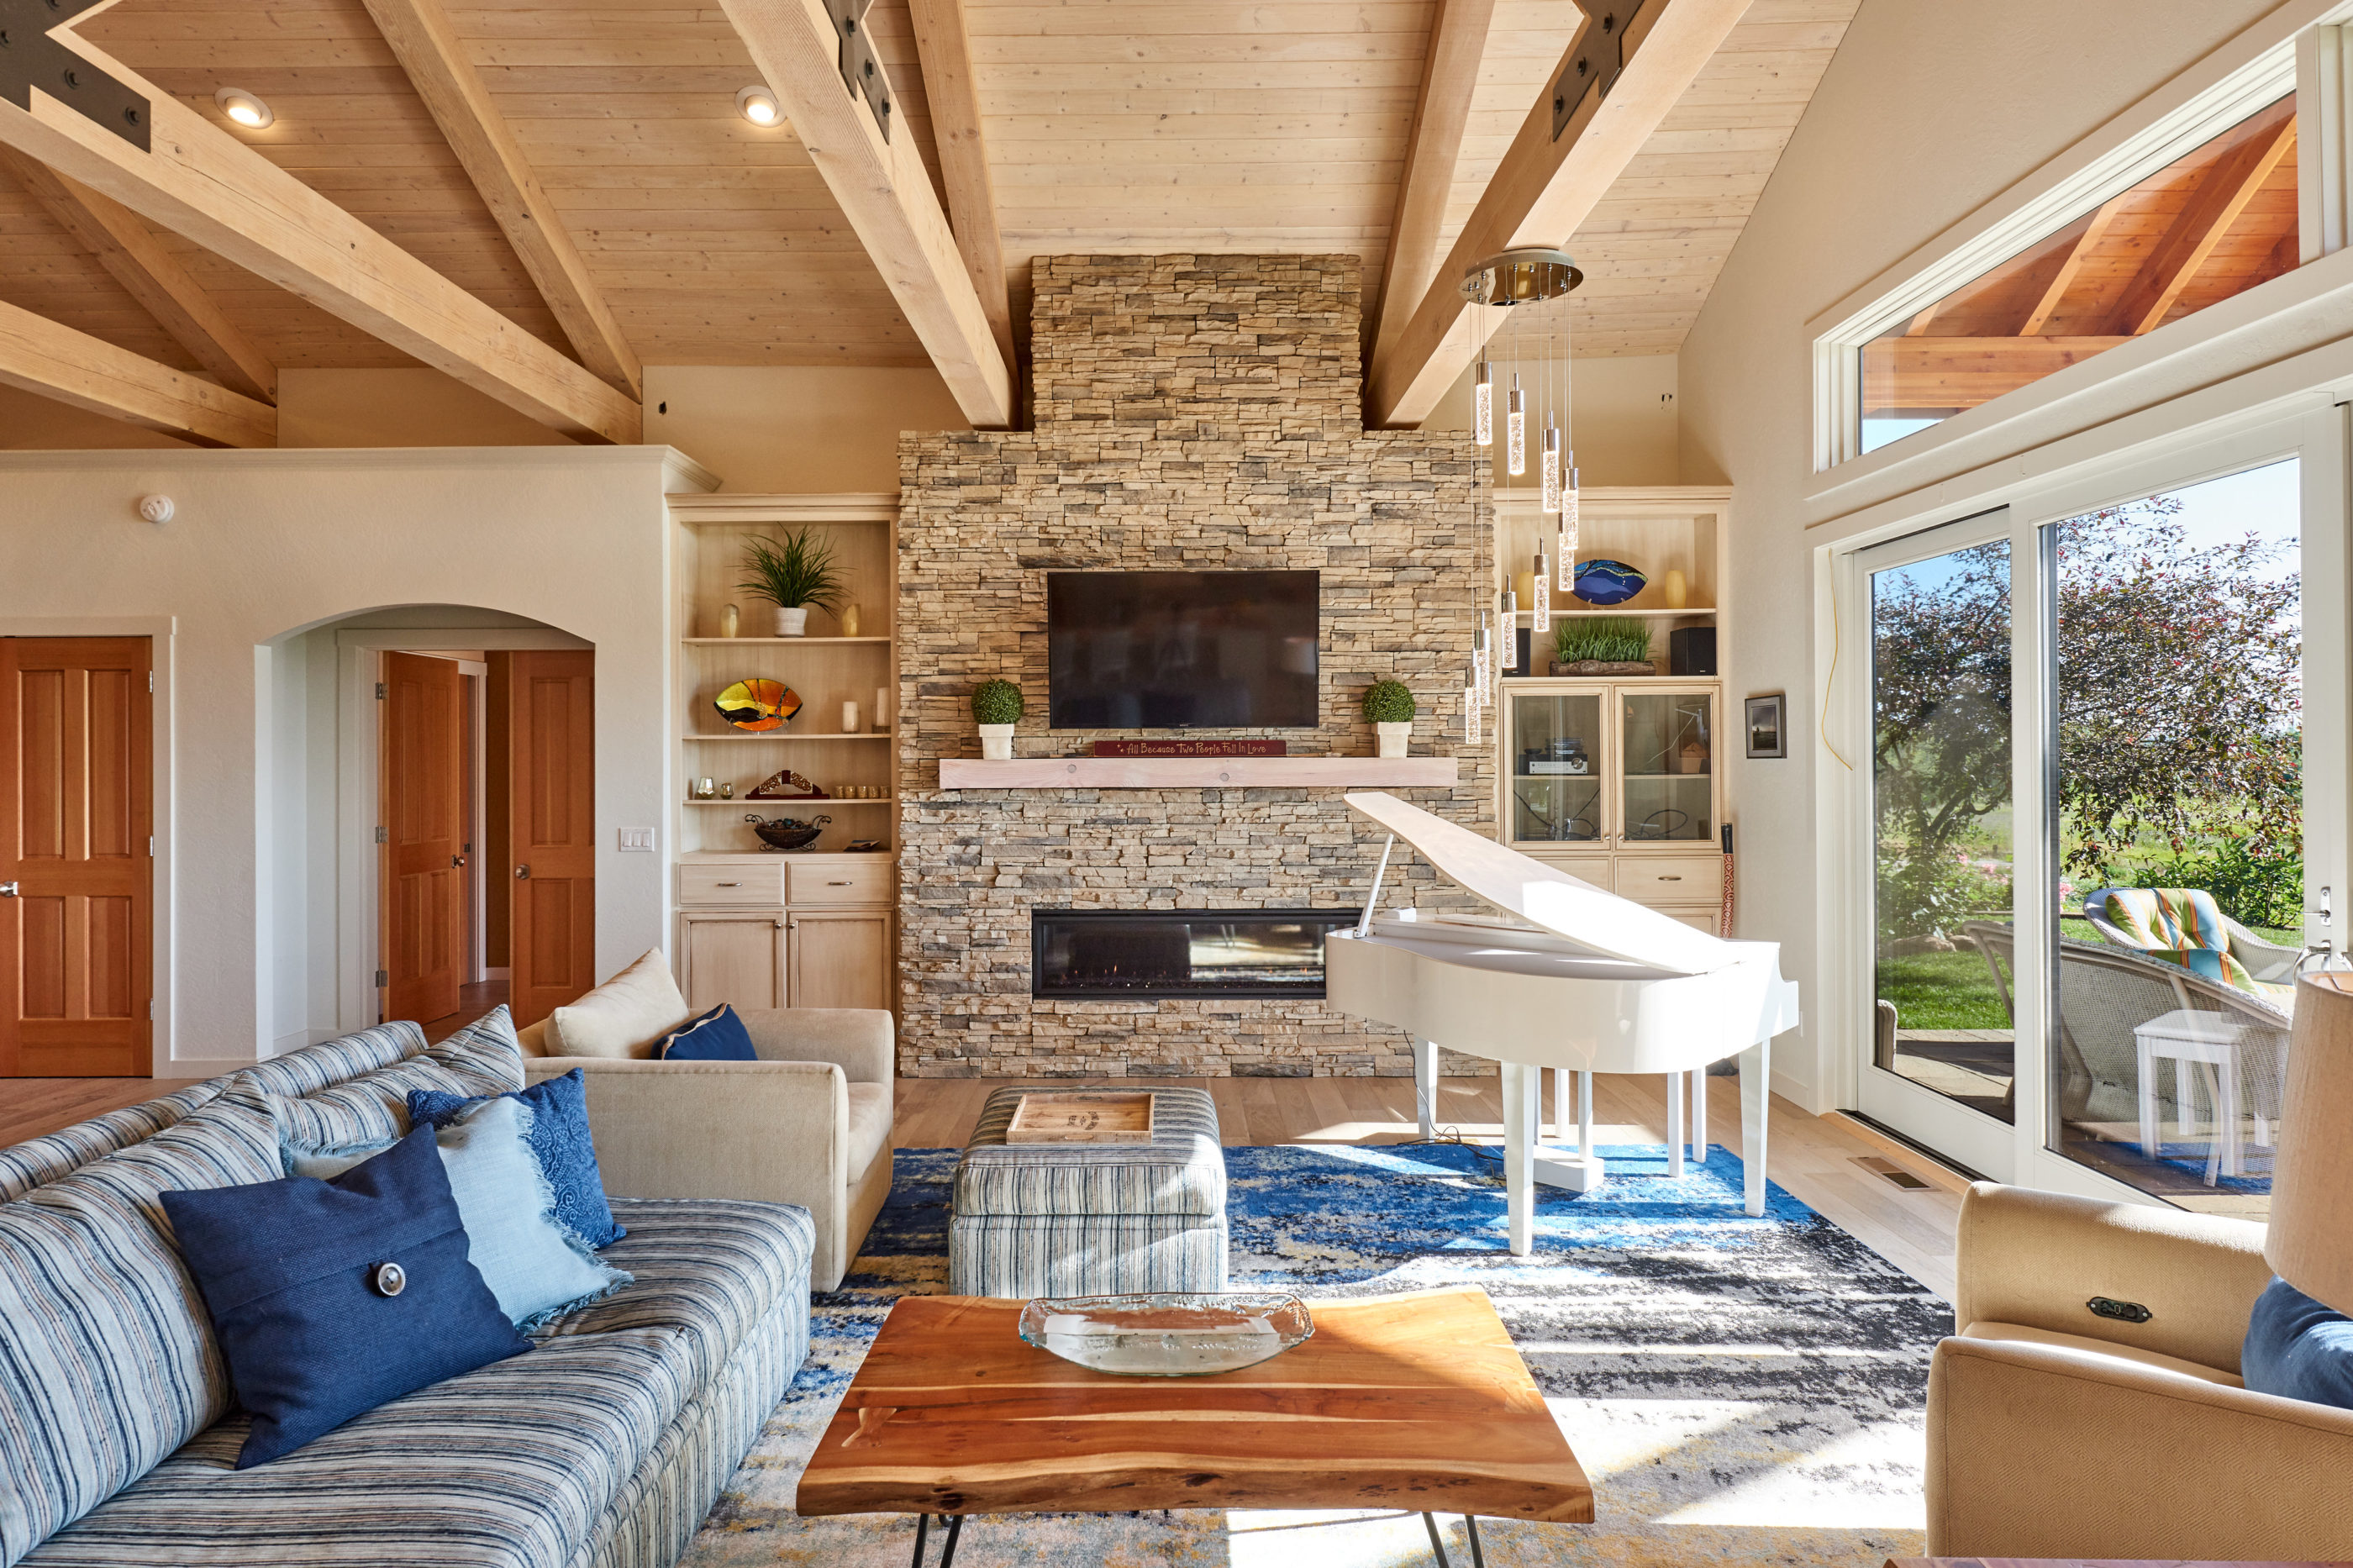 stone fireplace with horizontal timber beams on ceiling